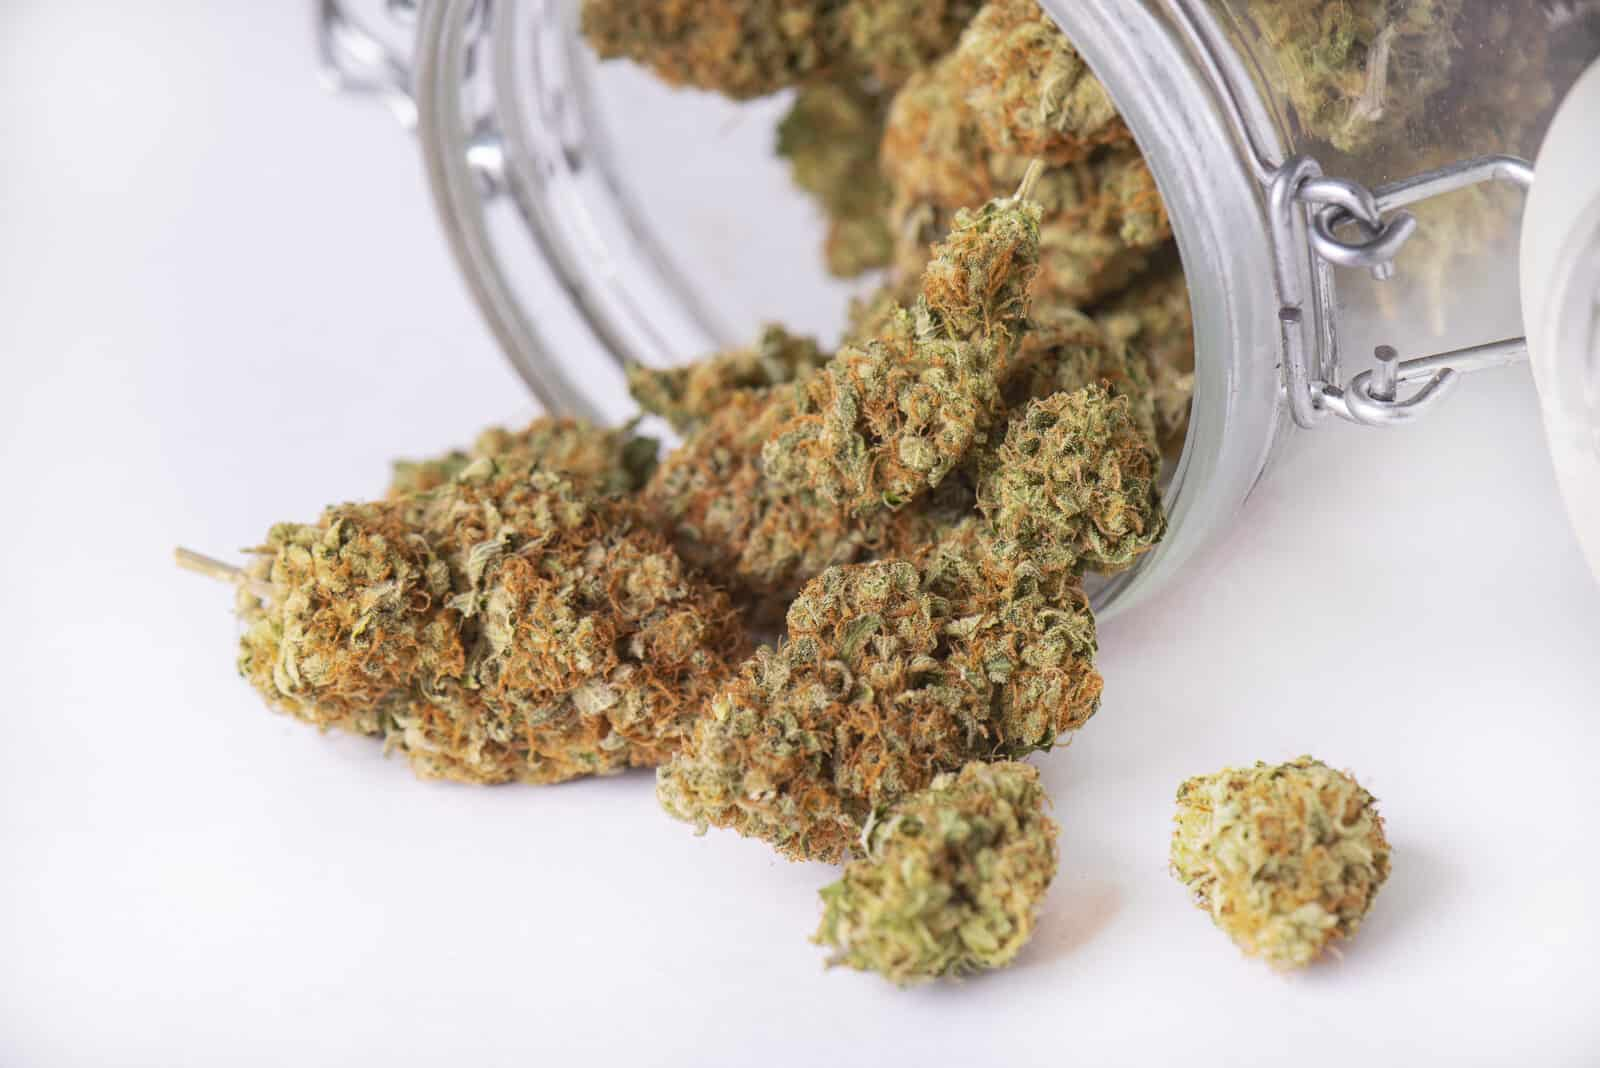 An In-Depth Look At The Cherry Pie Cannabis Strain. Marijuana buds